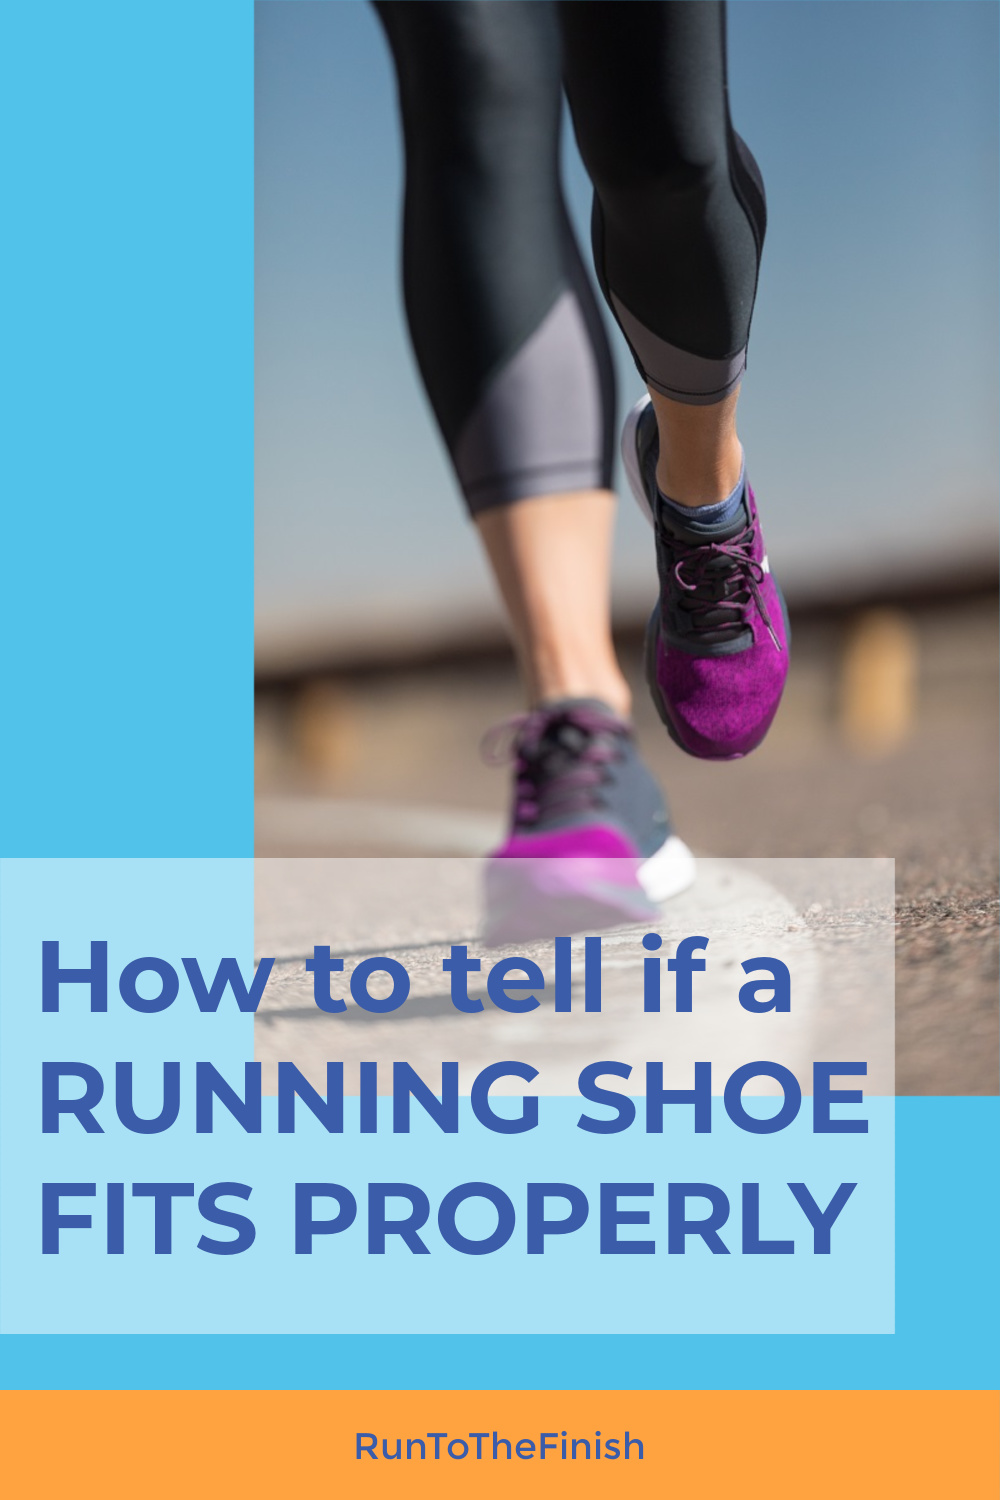 How to Tell if Running Shoes Fit